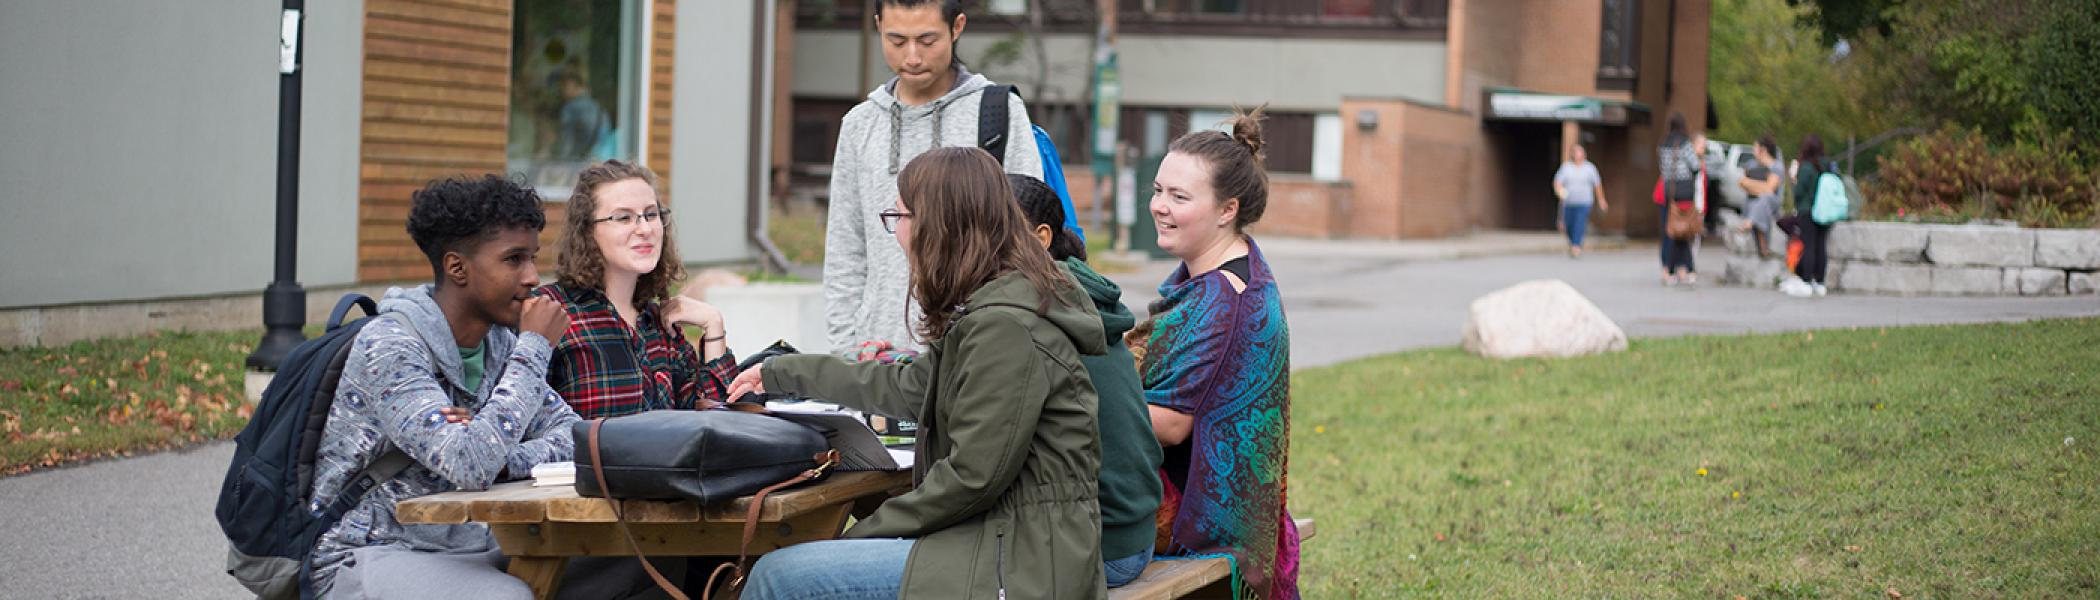 Students chatting at an outside table at Traill College